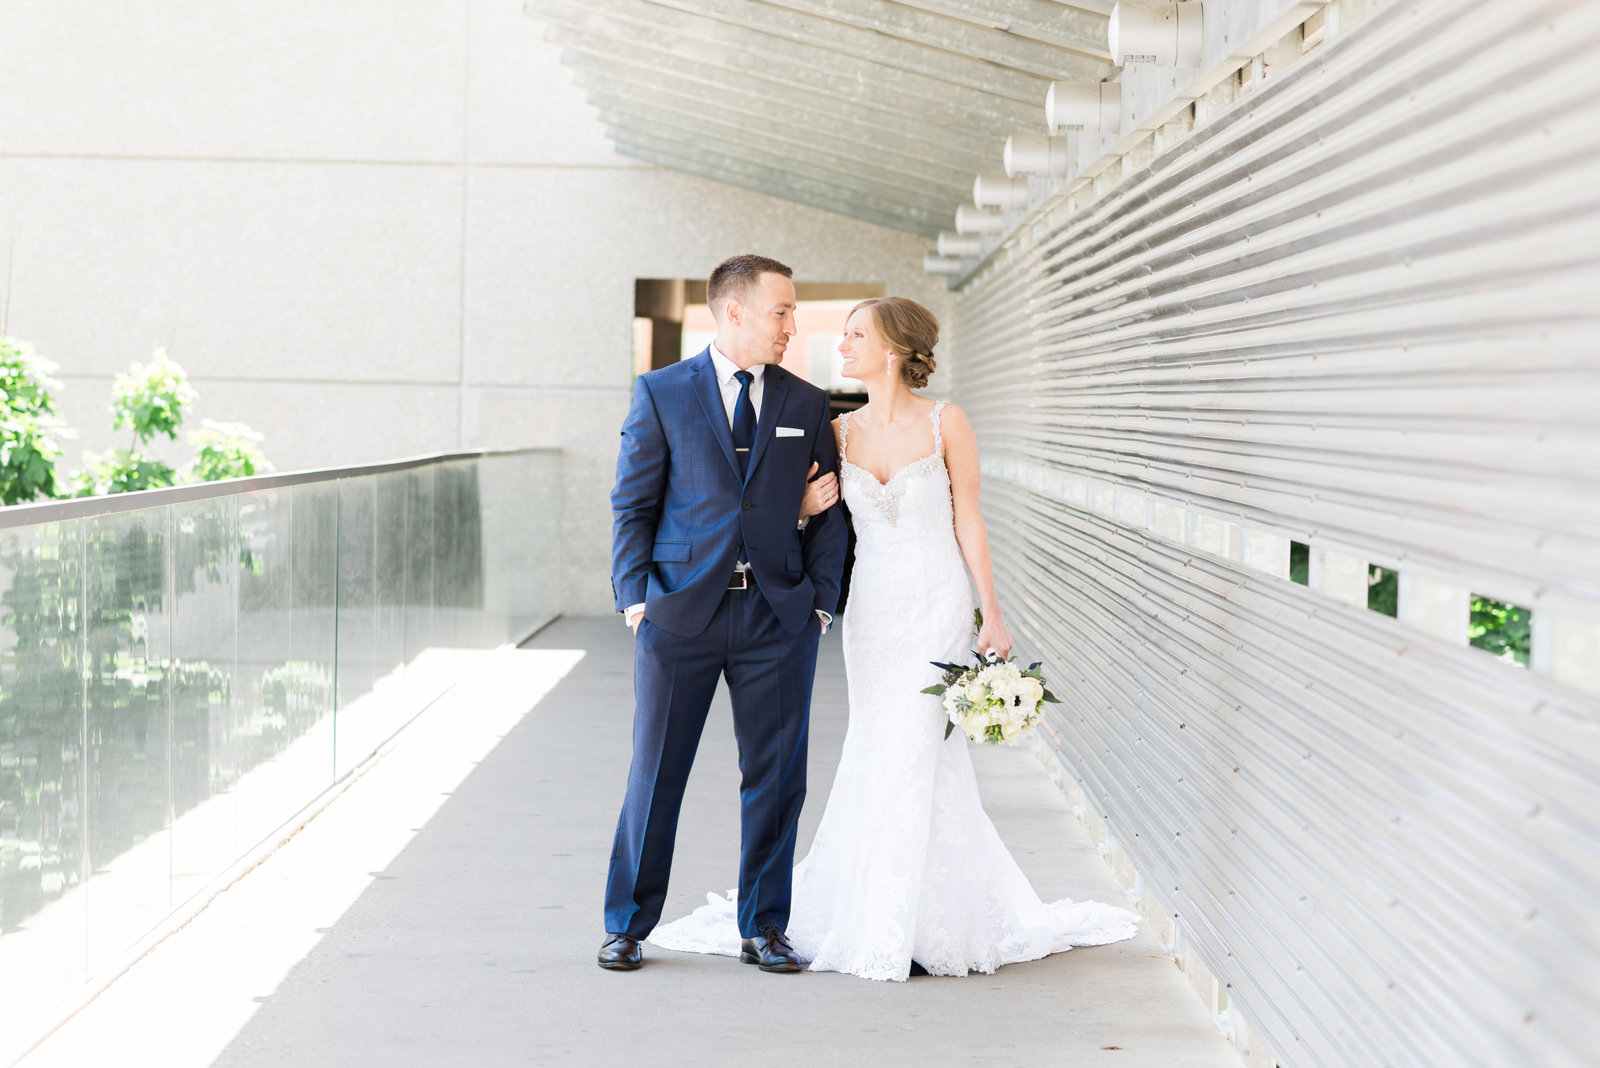 Midwest Iowa Wedding Photographer At Hotel Vetro City Bride And Groom In Navy